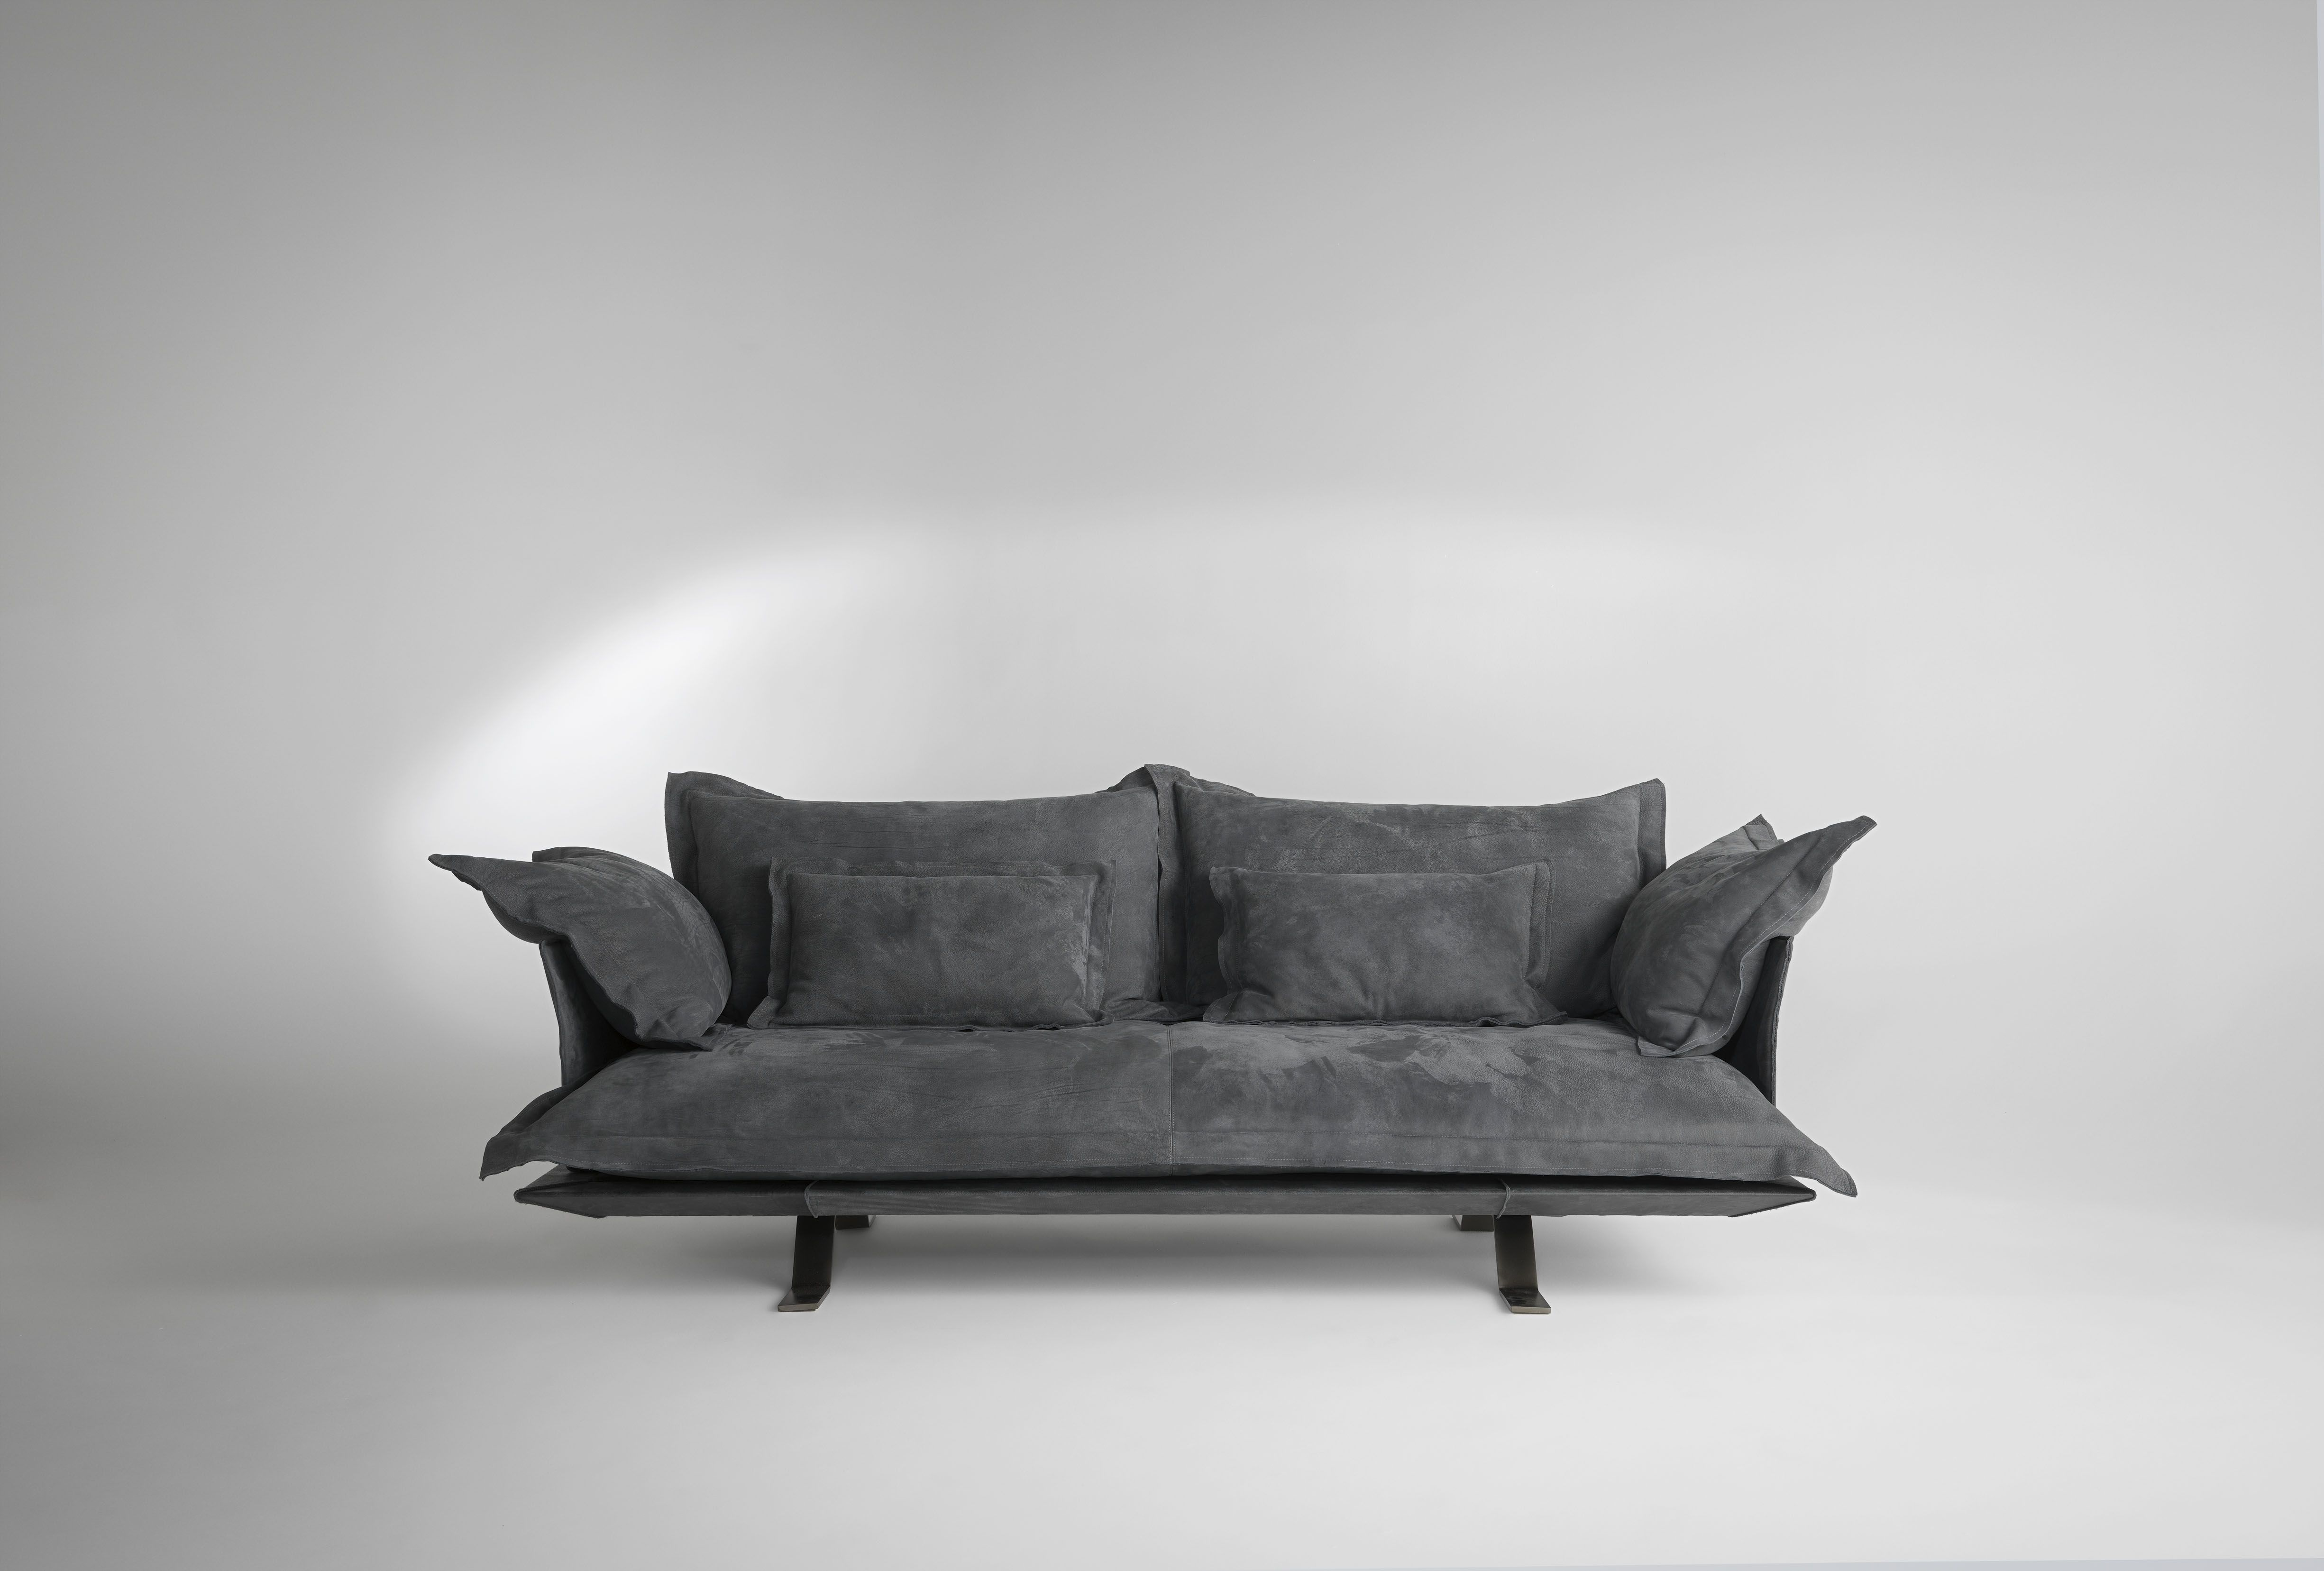 M1 Sofa Modular Sofa With Various Elements Matchable According To